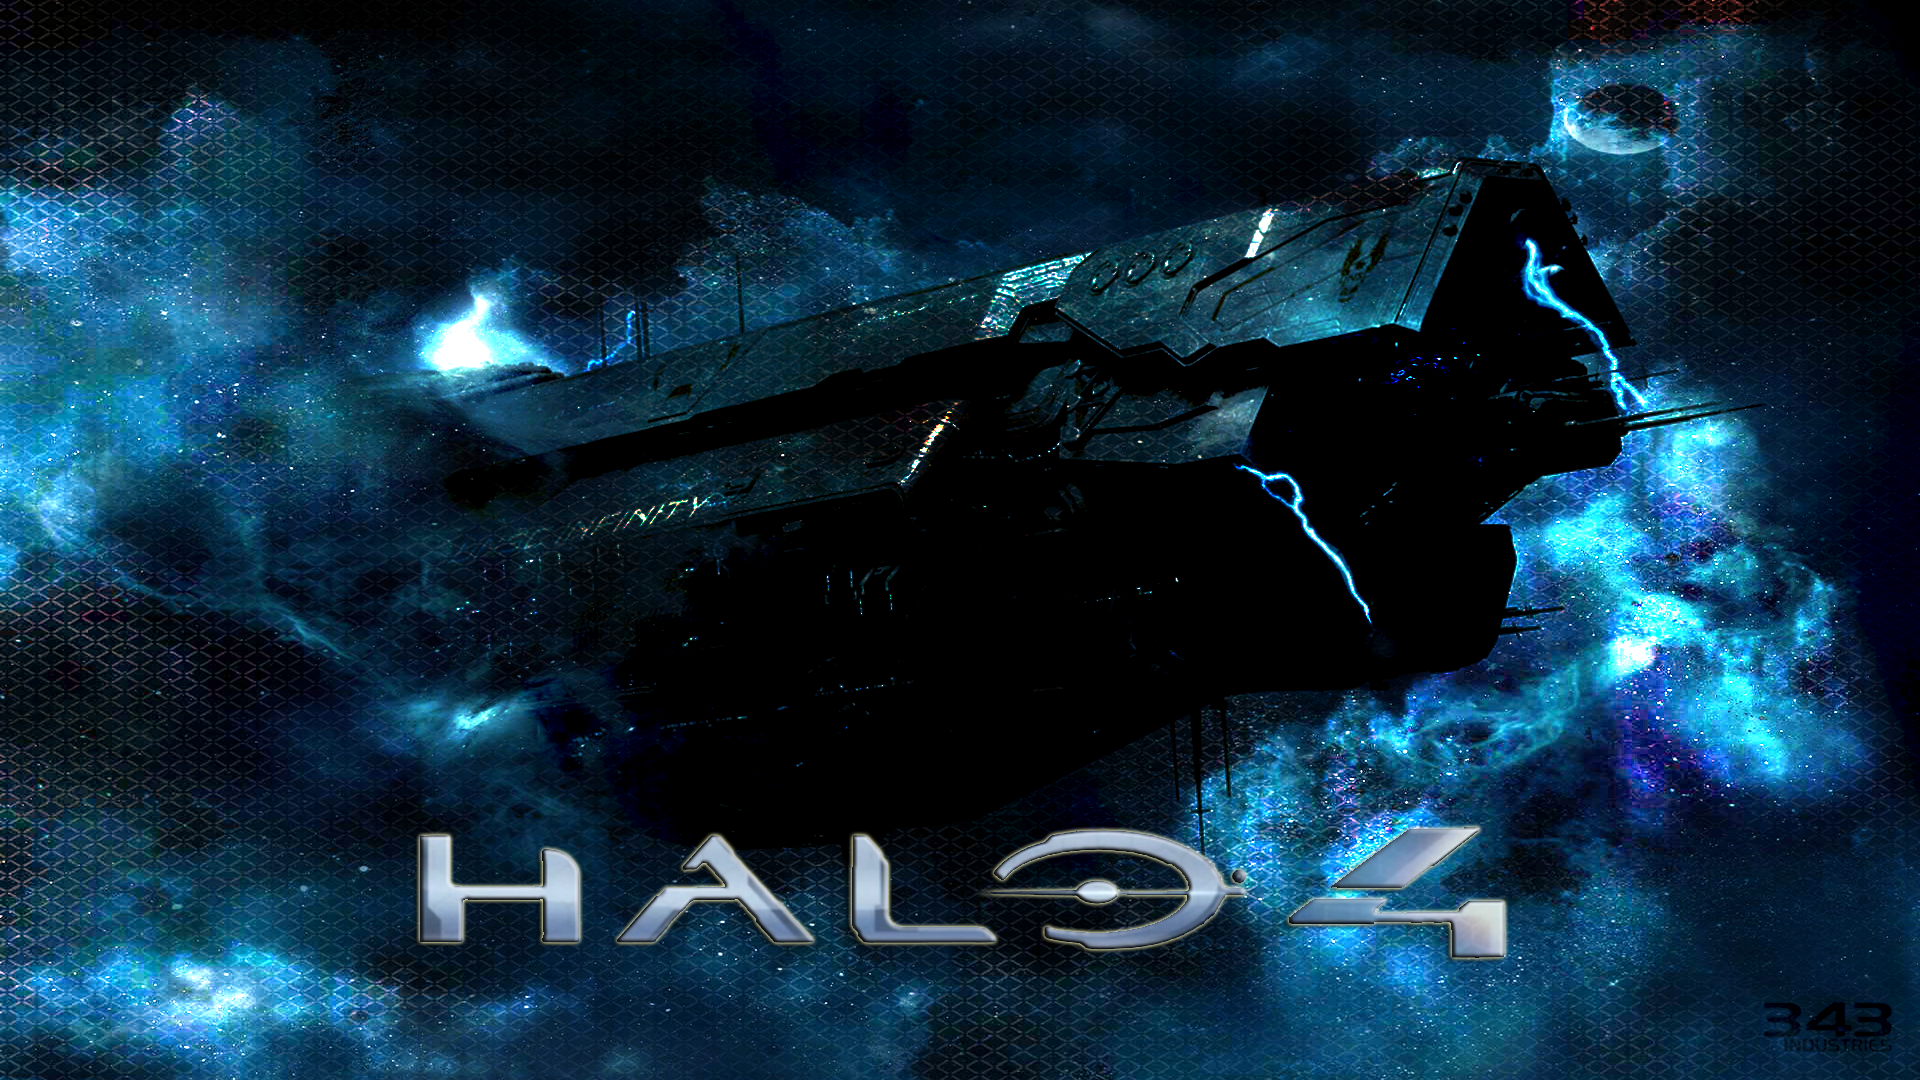 Cool Video Game Wallpapers Halowallpapers Halo Campaign 1920x1080